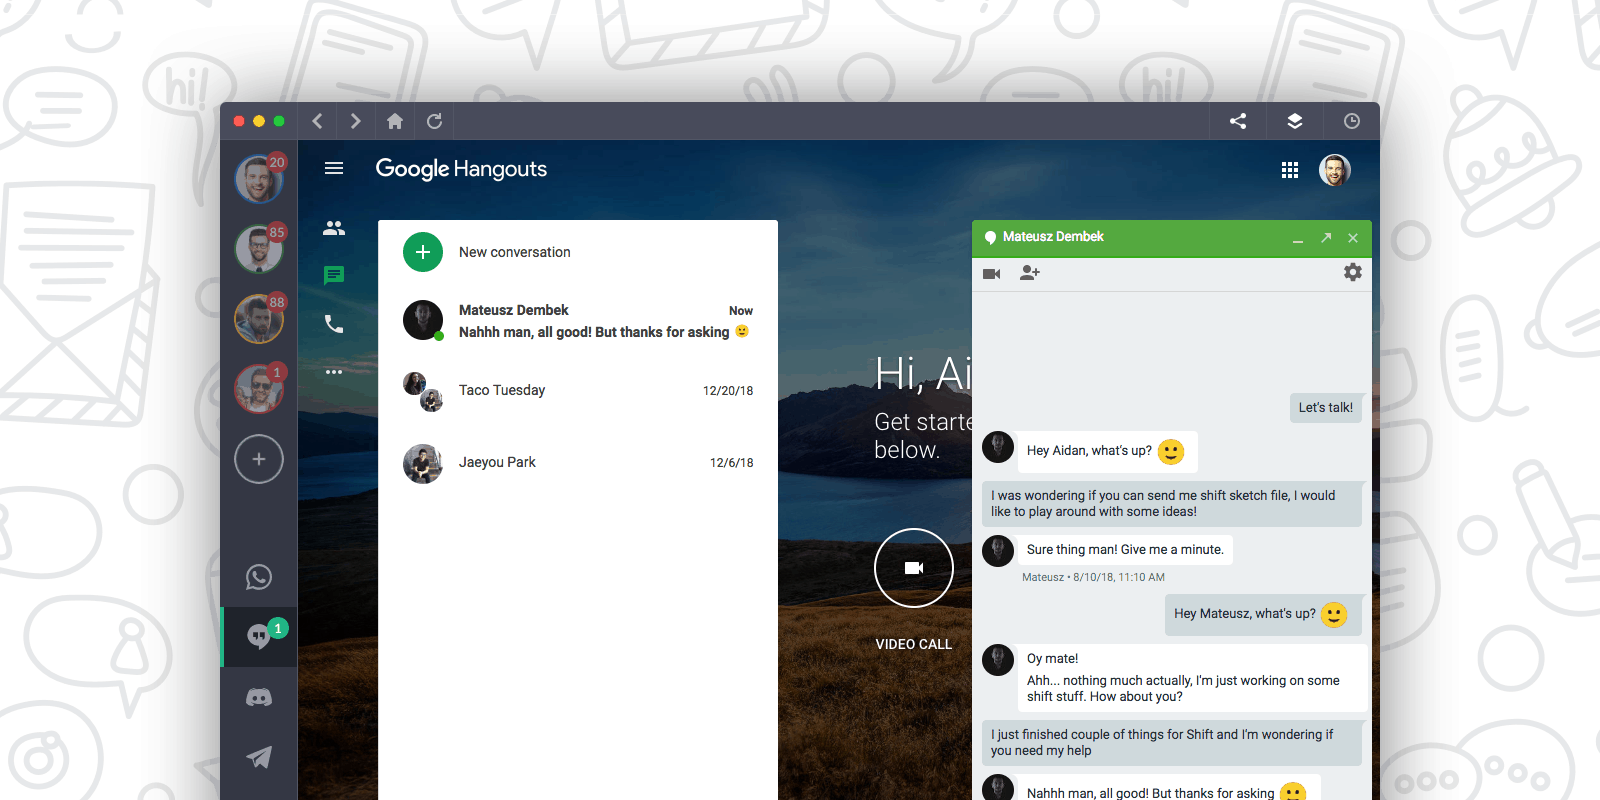 Alternatives to WhatsApp Messenger include Google Hangouts